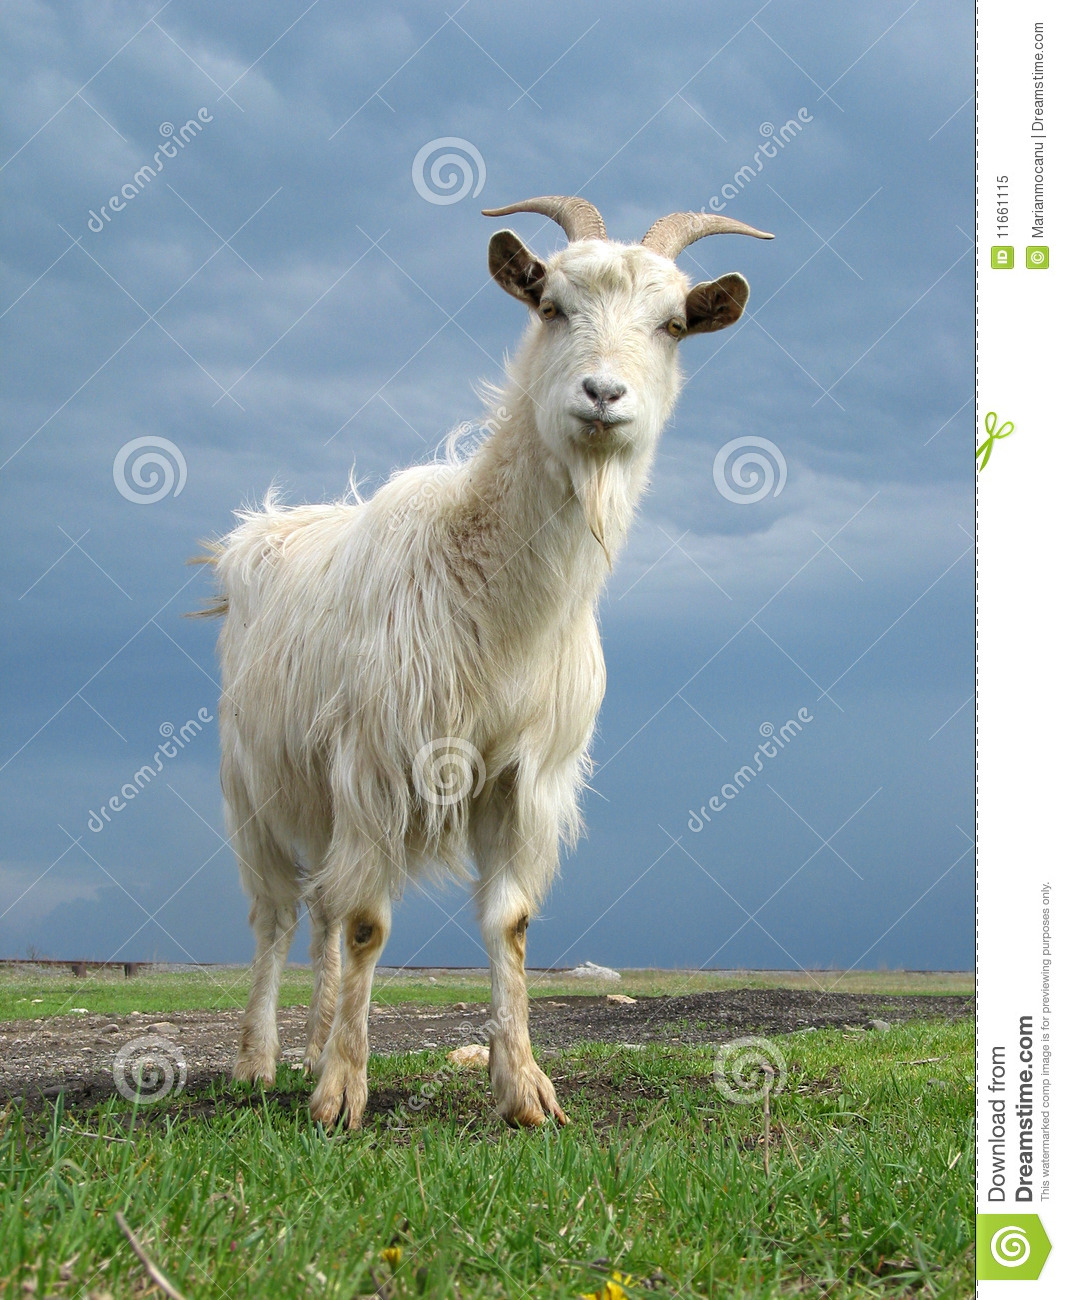 Download Goat stock image. Image of grass, hairy, clouds, mature - 11661115